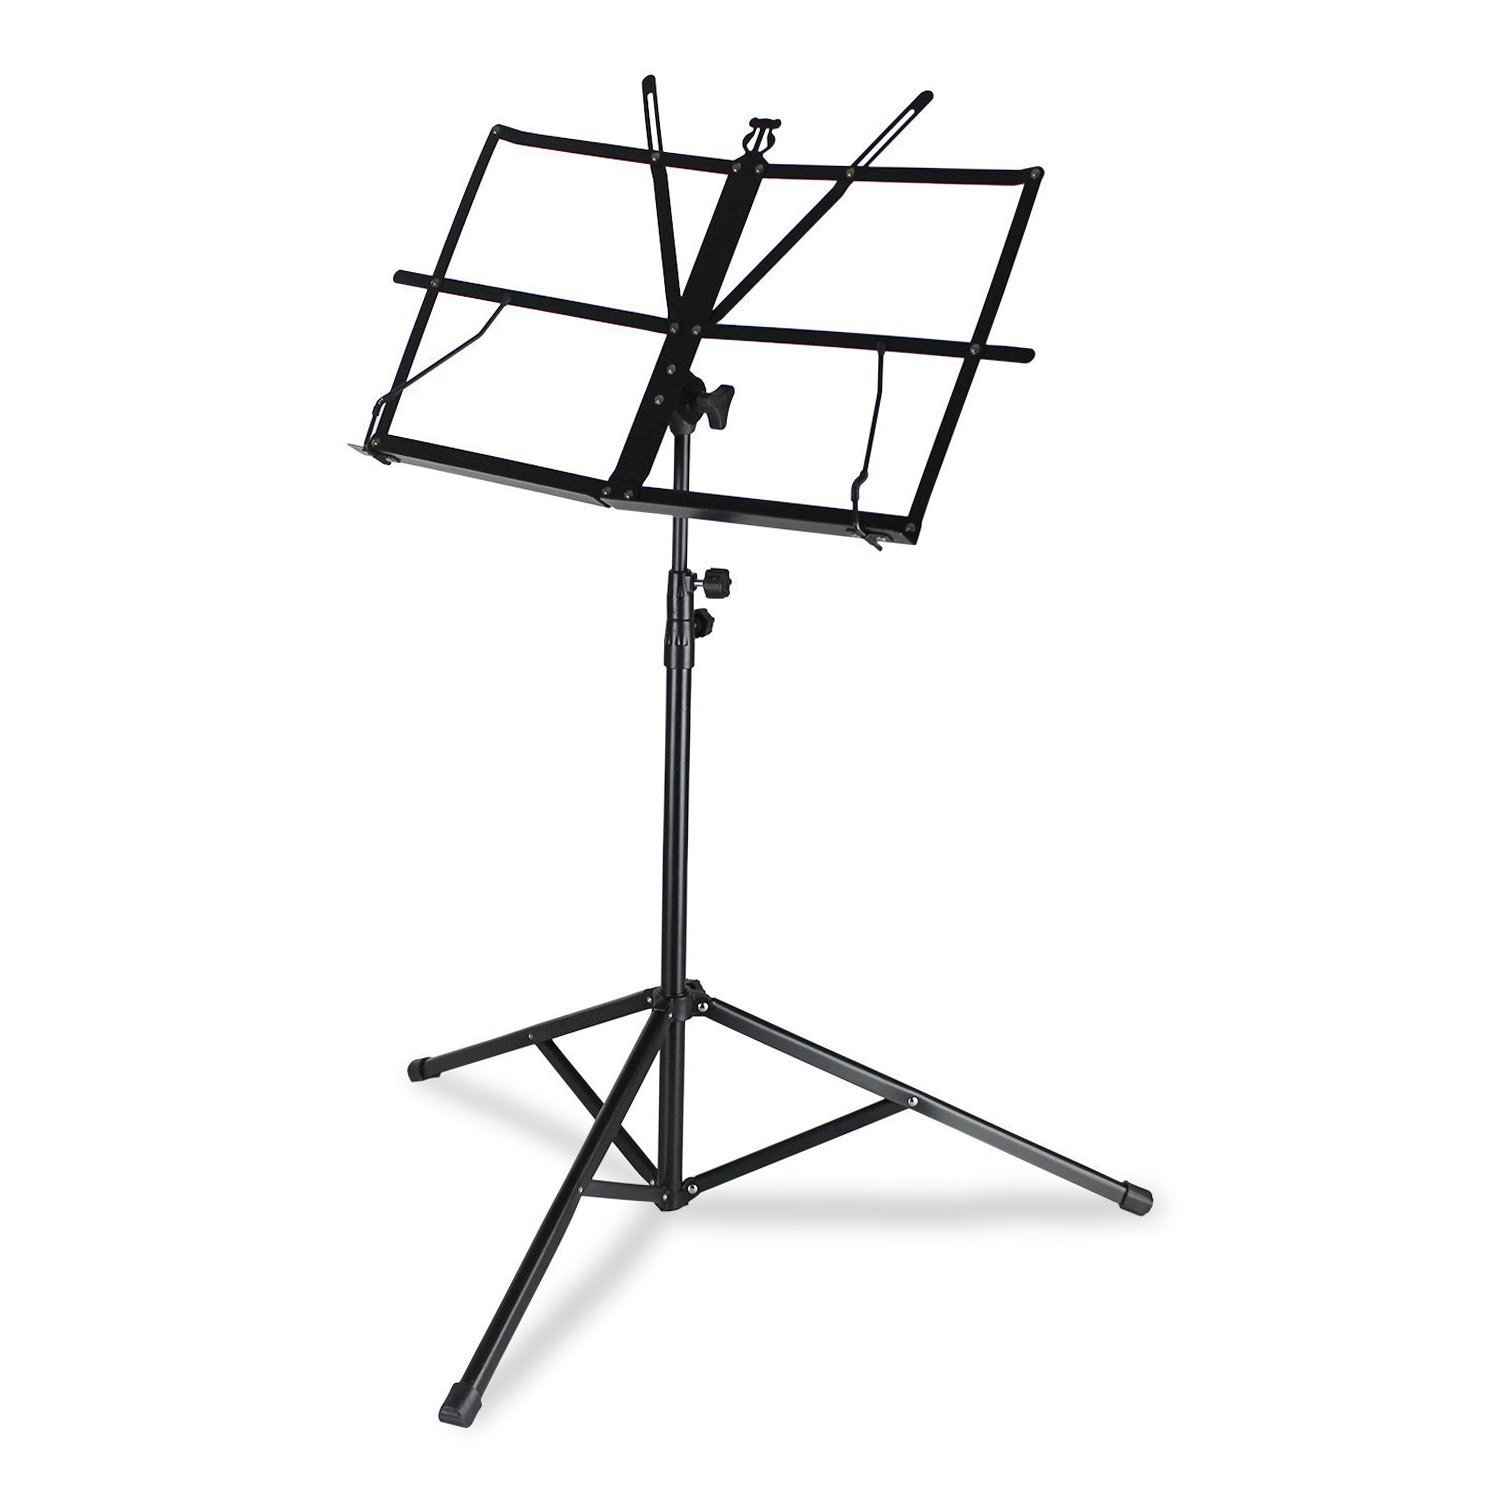 Encore Basics Music Stand, Foldable w/ Sheet Holders - Lightweight Metal Design for Guitar, Violin, Brass Players & More